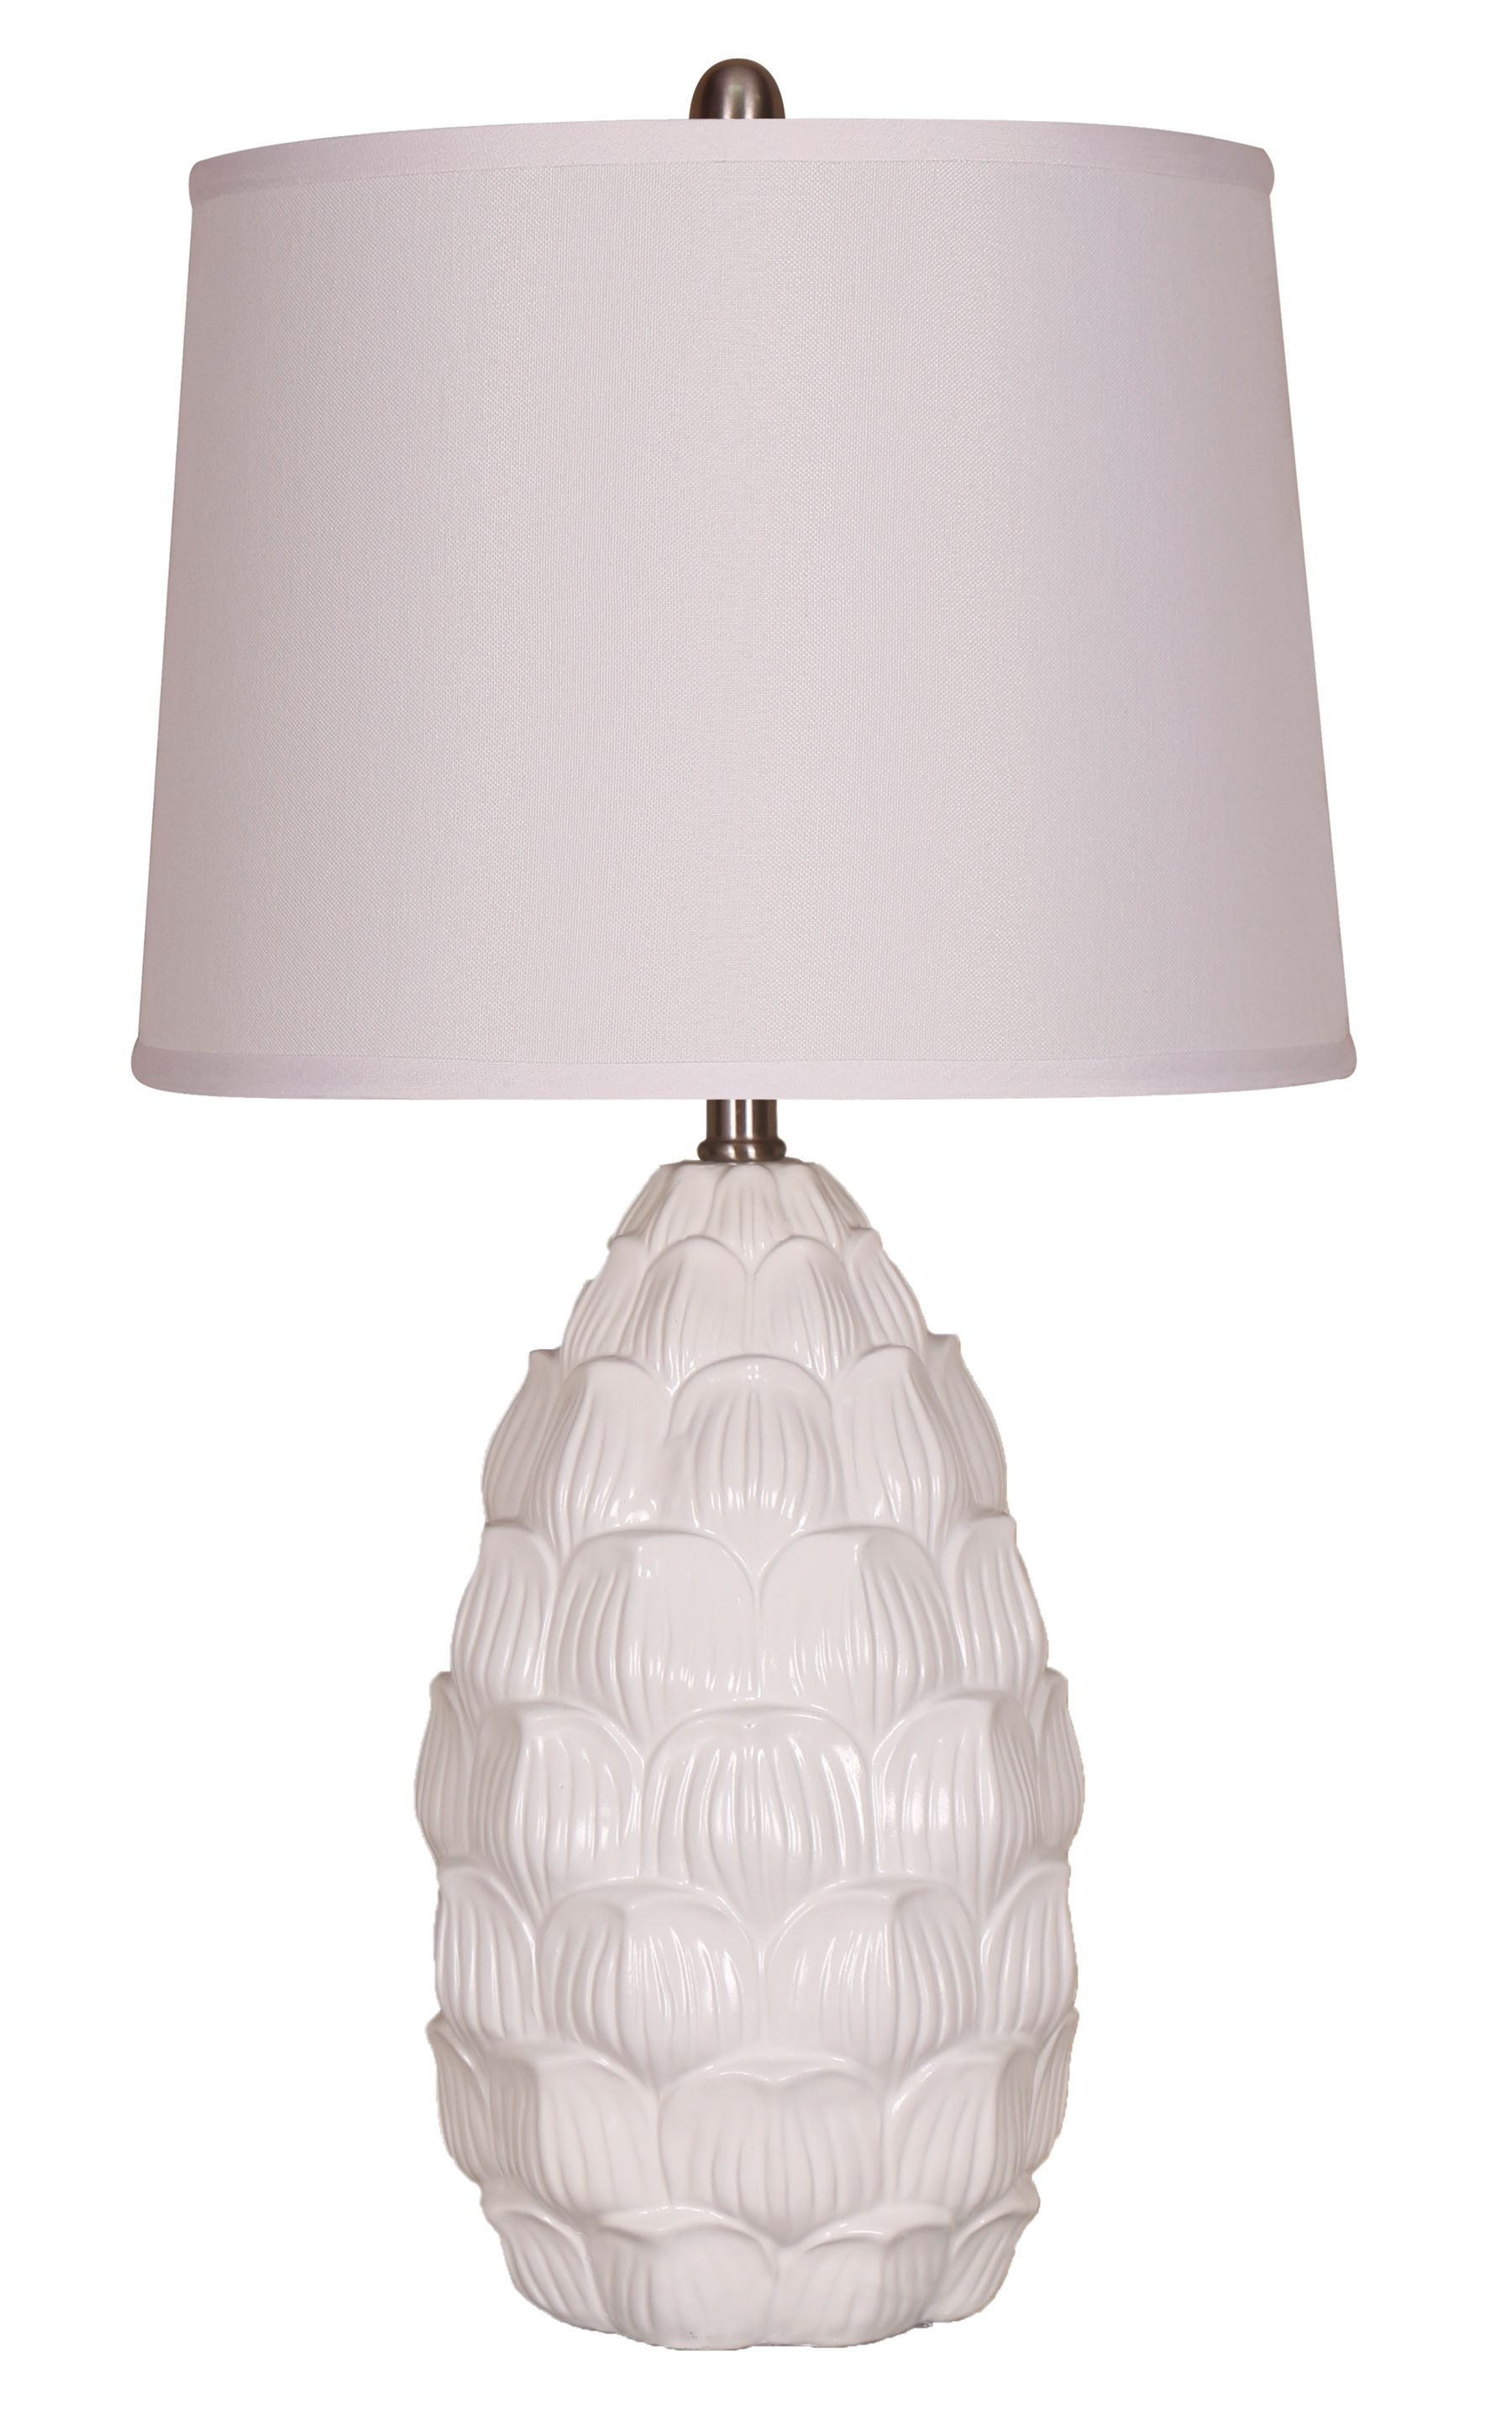 Image of Elegant Designs Resin Table Lamp with Fabric Shade, White